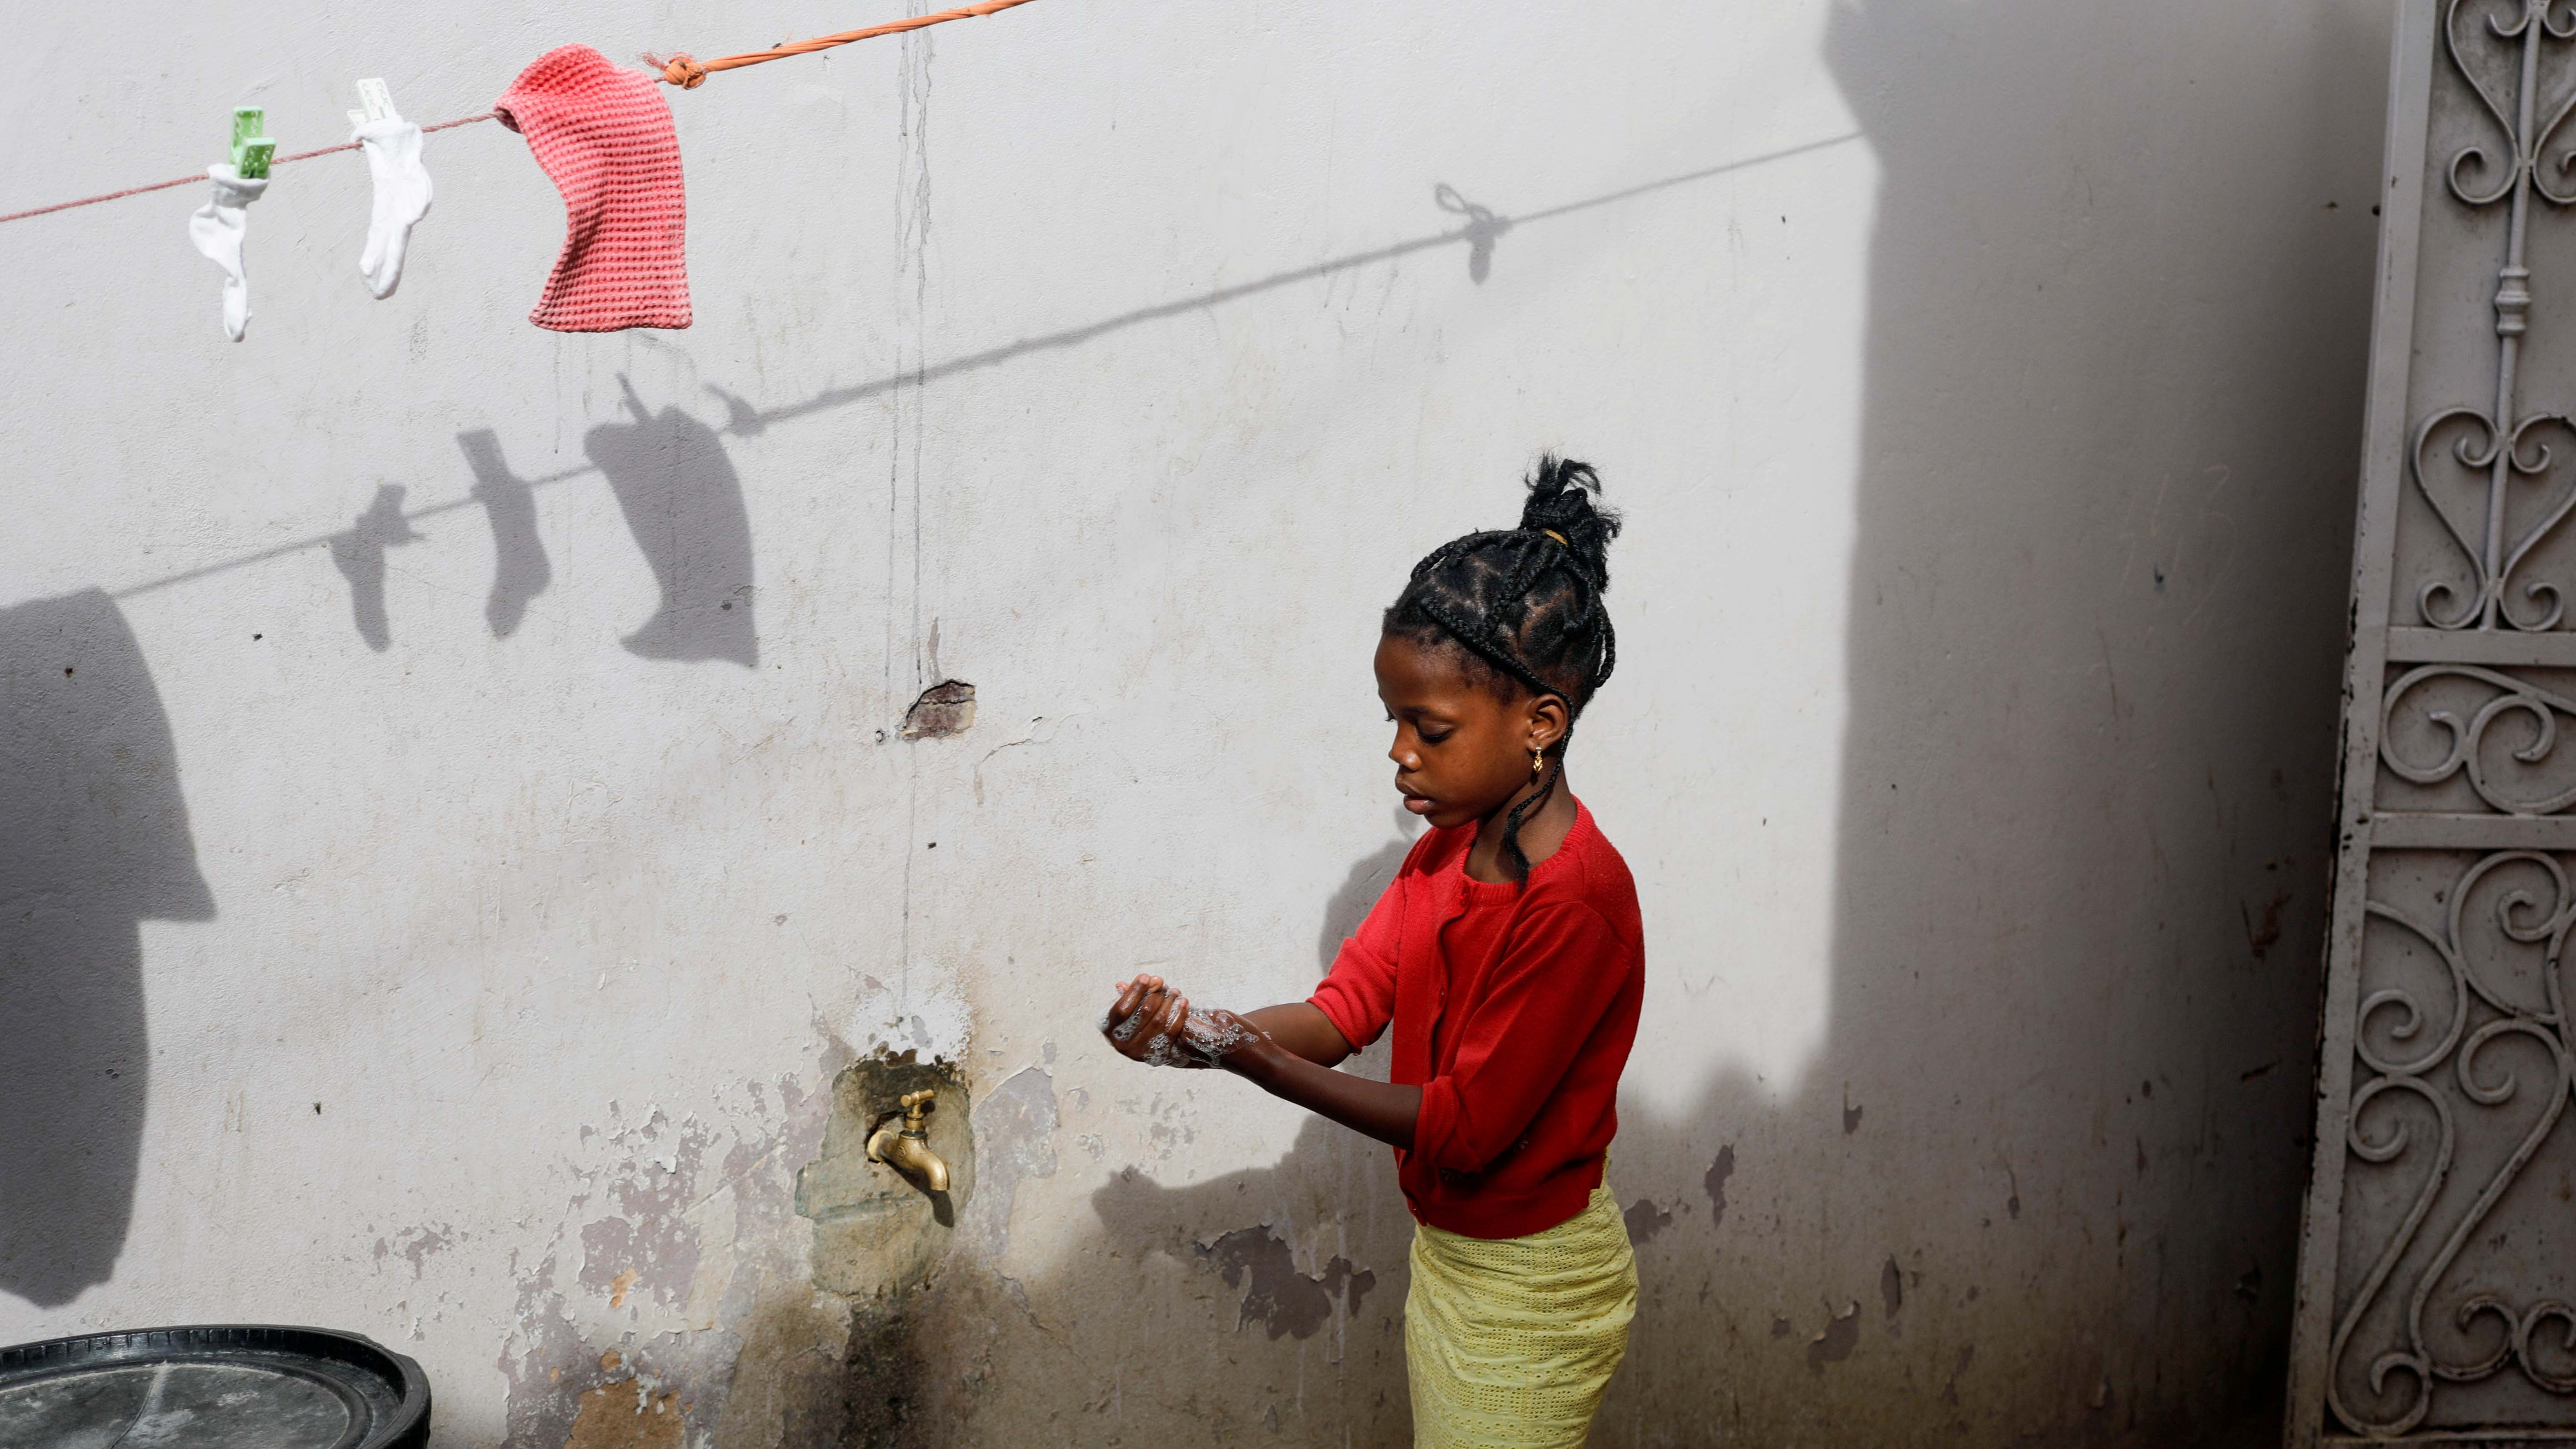 A girl washes her hands at a spigot at the entrance of her parents' house in Pikine, on the outskirts of Dakar, Senegal, on March 9, 2020.